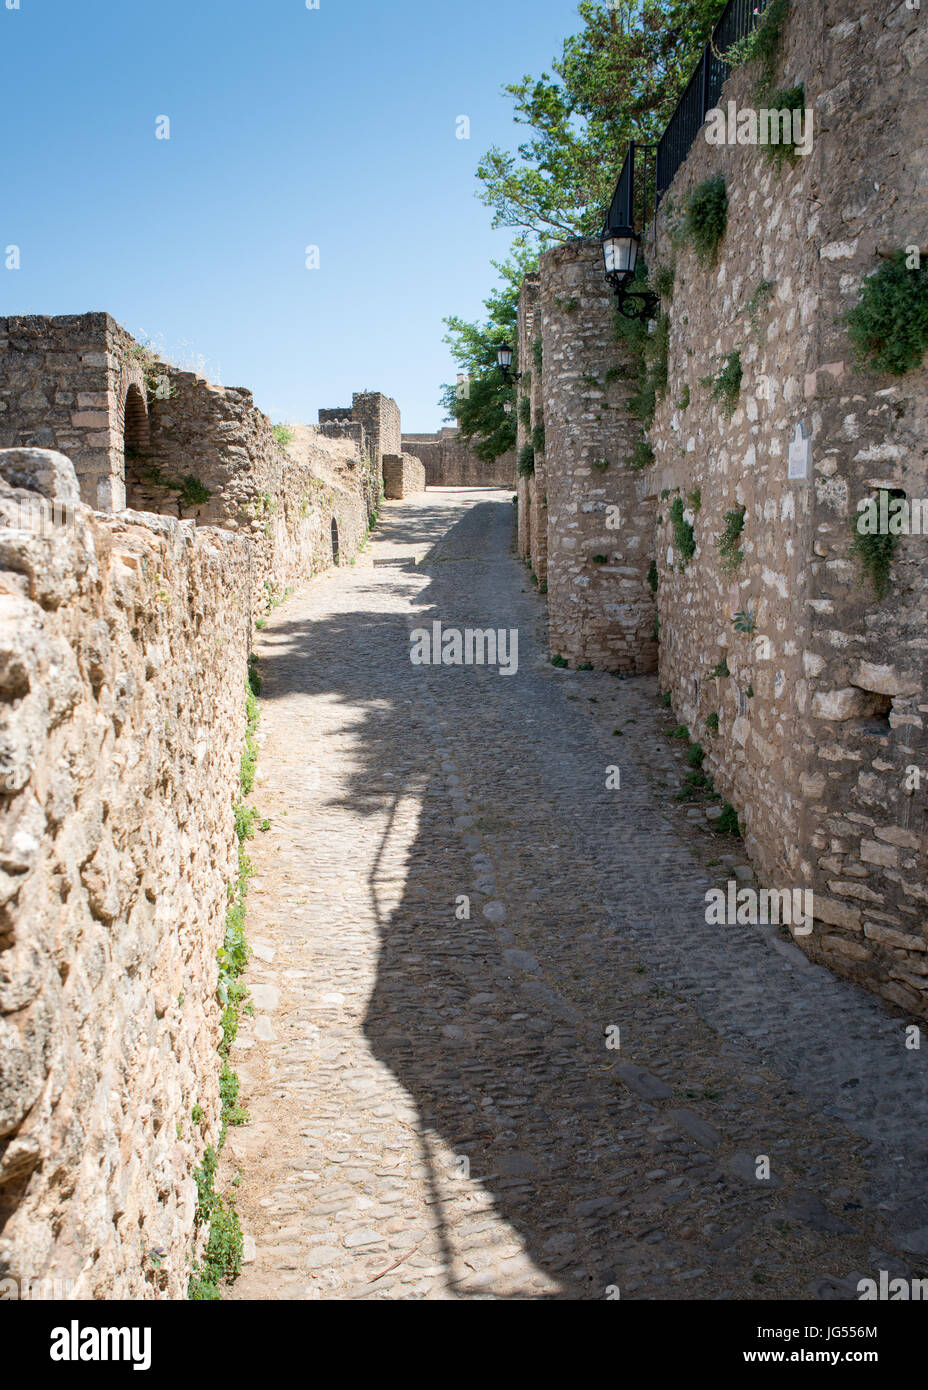 Ancient City Walls, Ronda, Andalucia, Spain Stock Photo